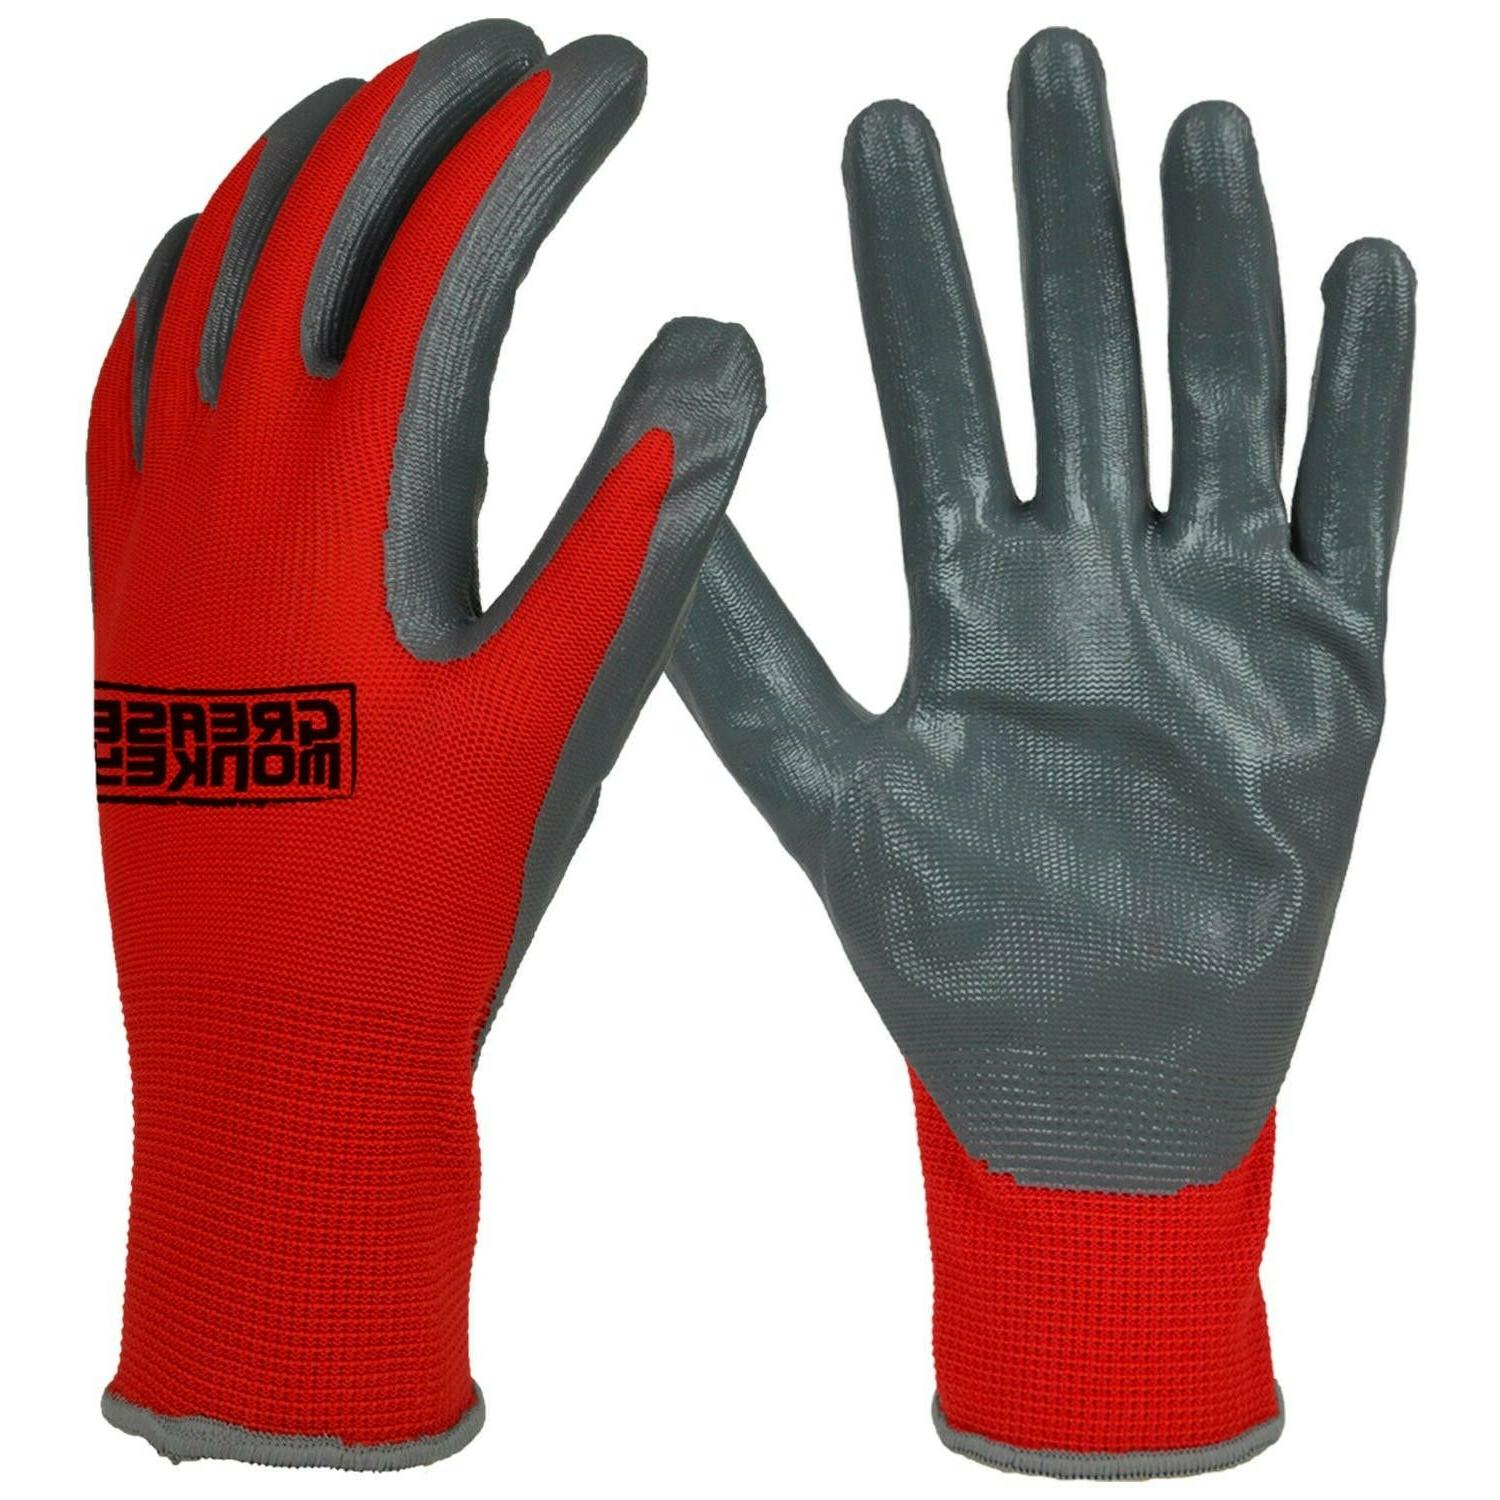 General Purpose Work Gloves, Size Large - of